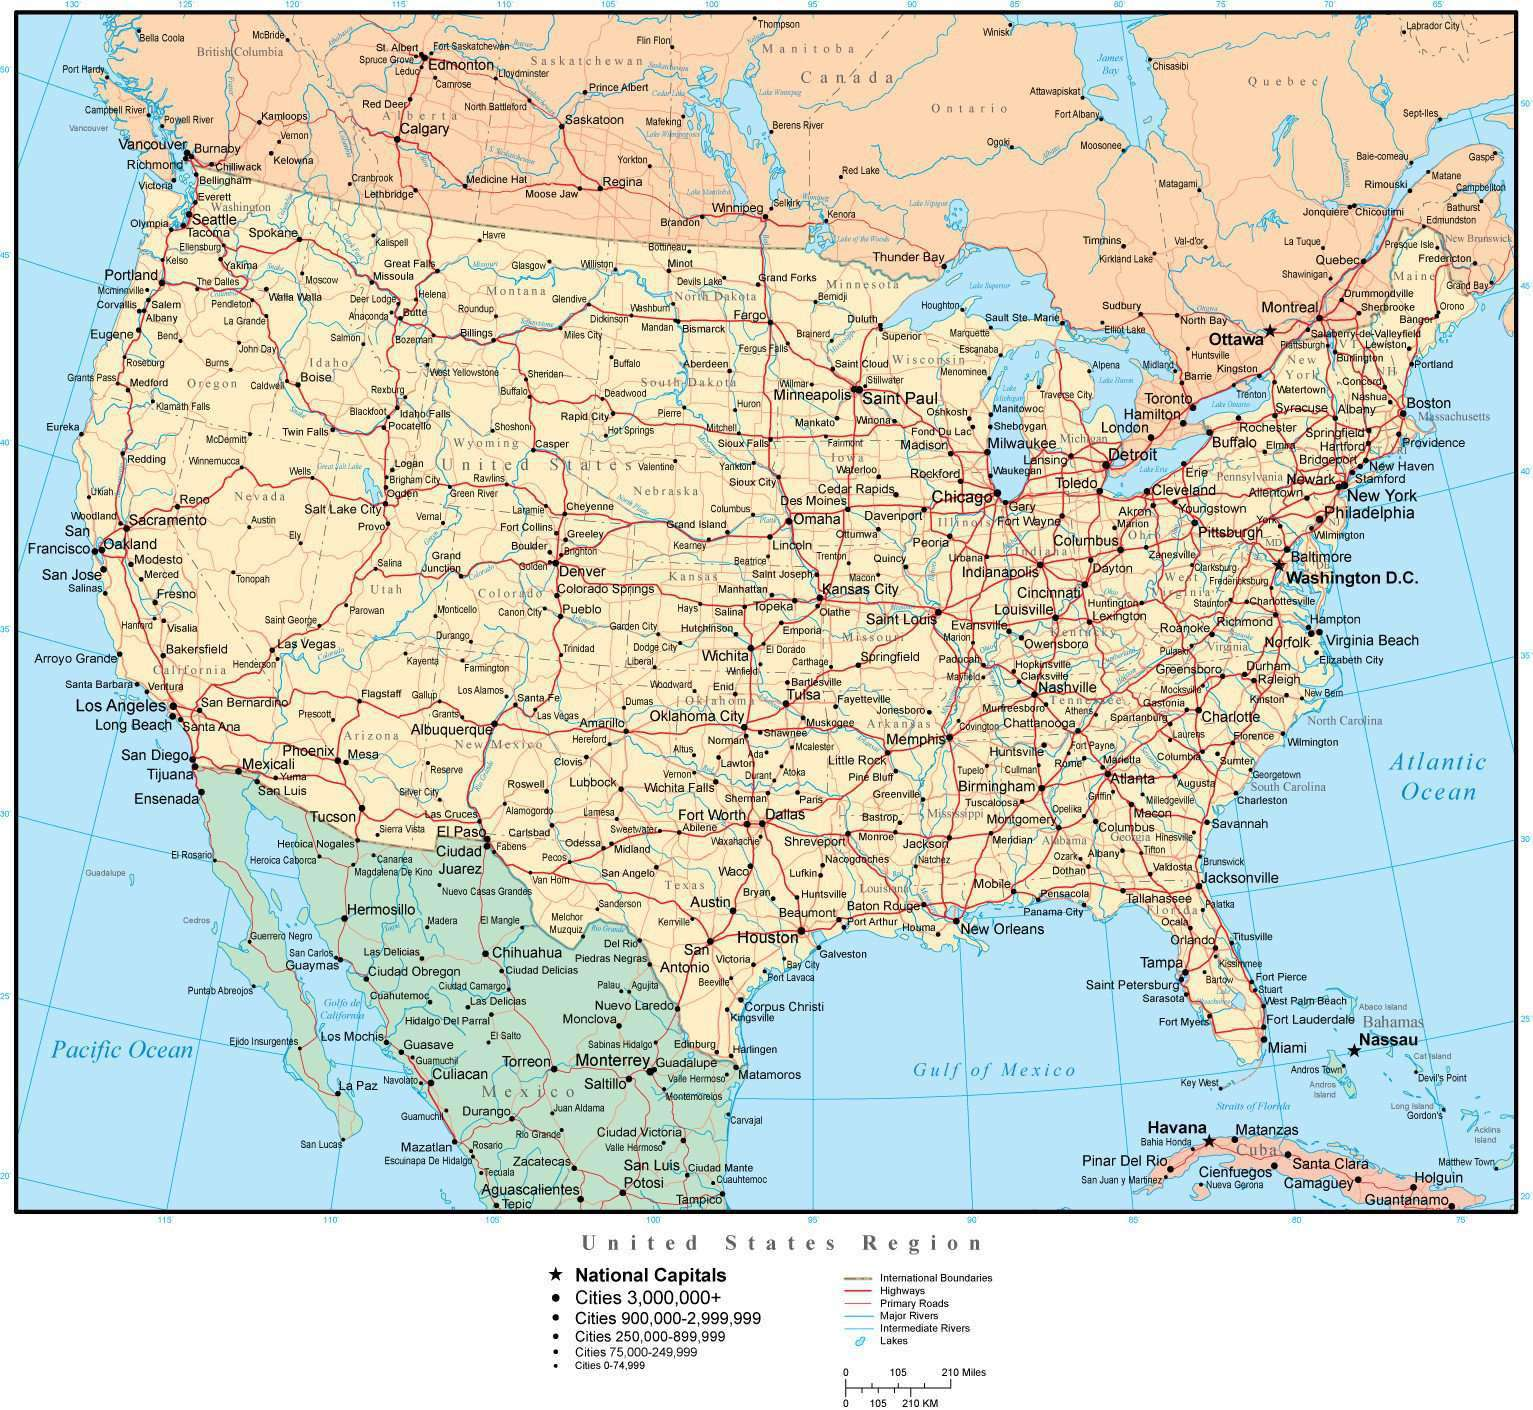 United States Map with US States, Capitals, Major Cities, & Roads